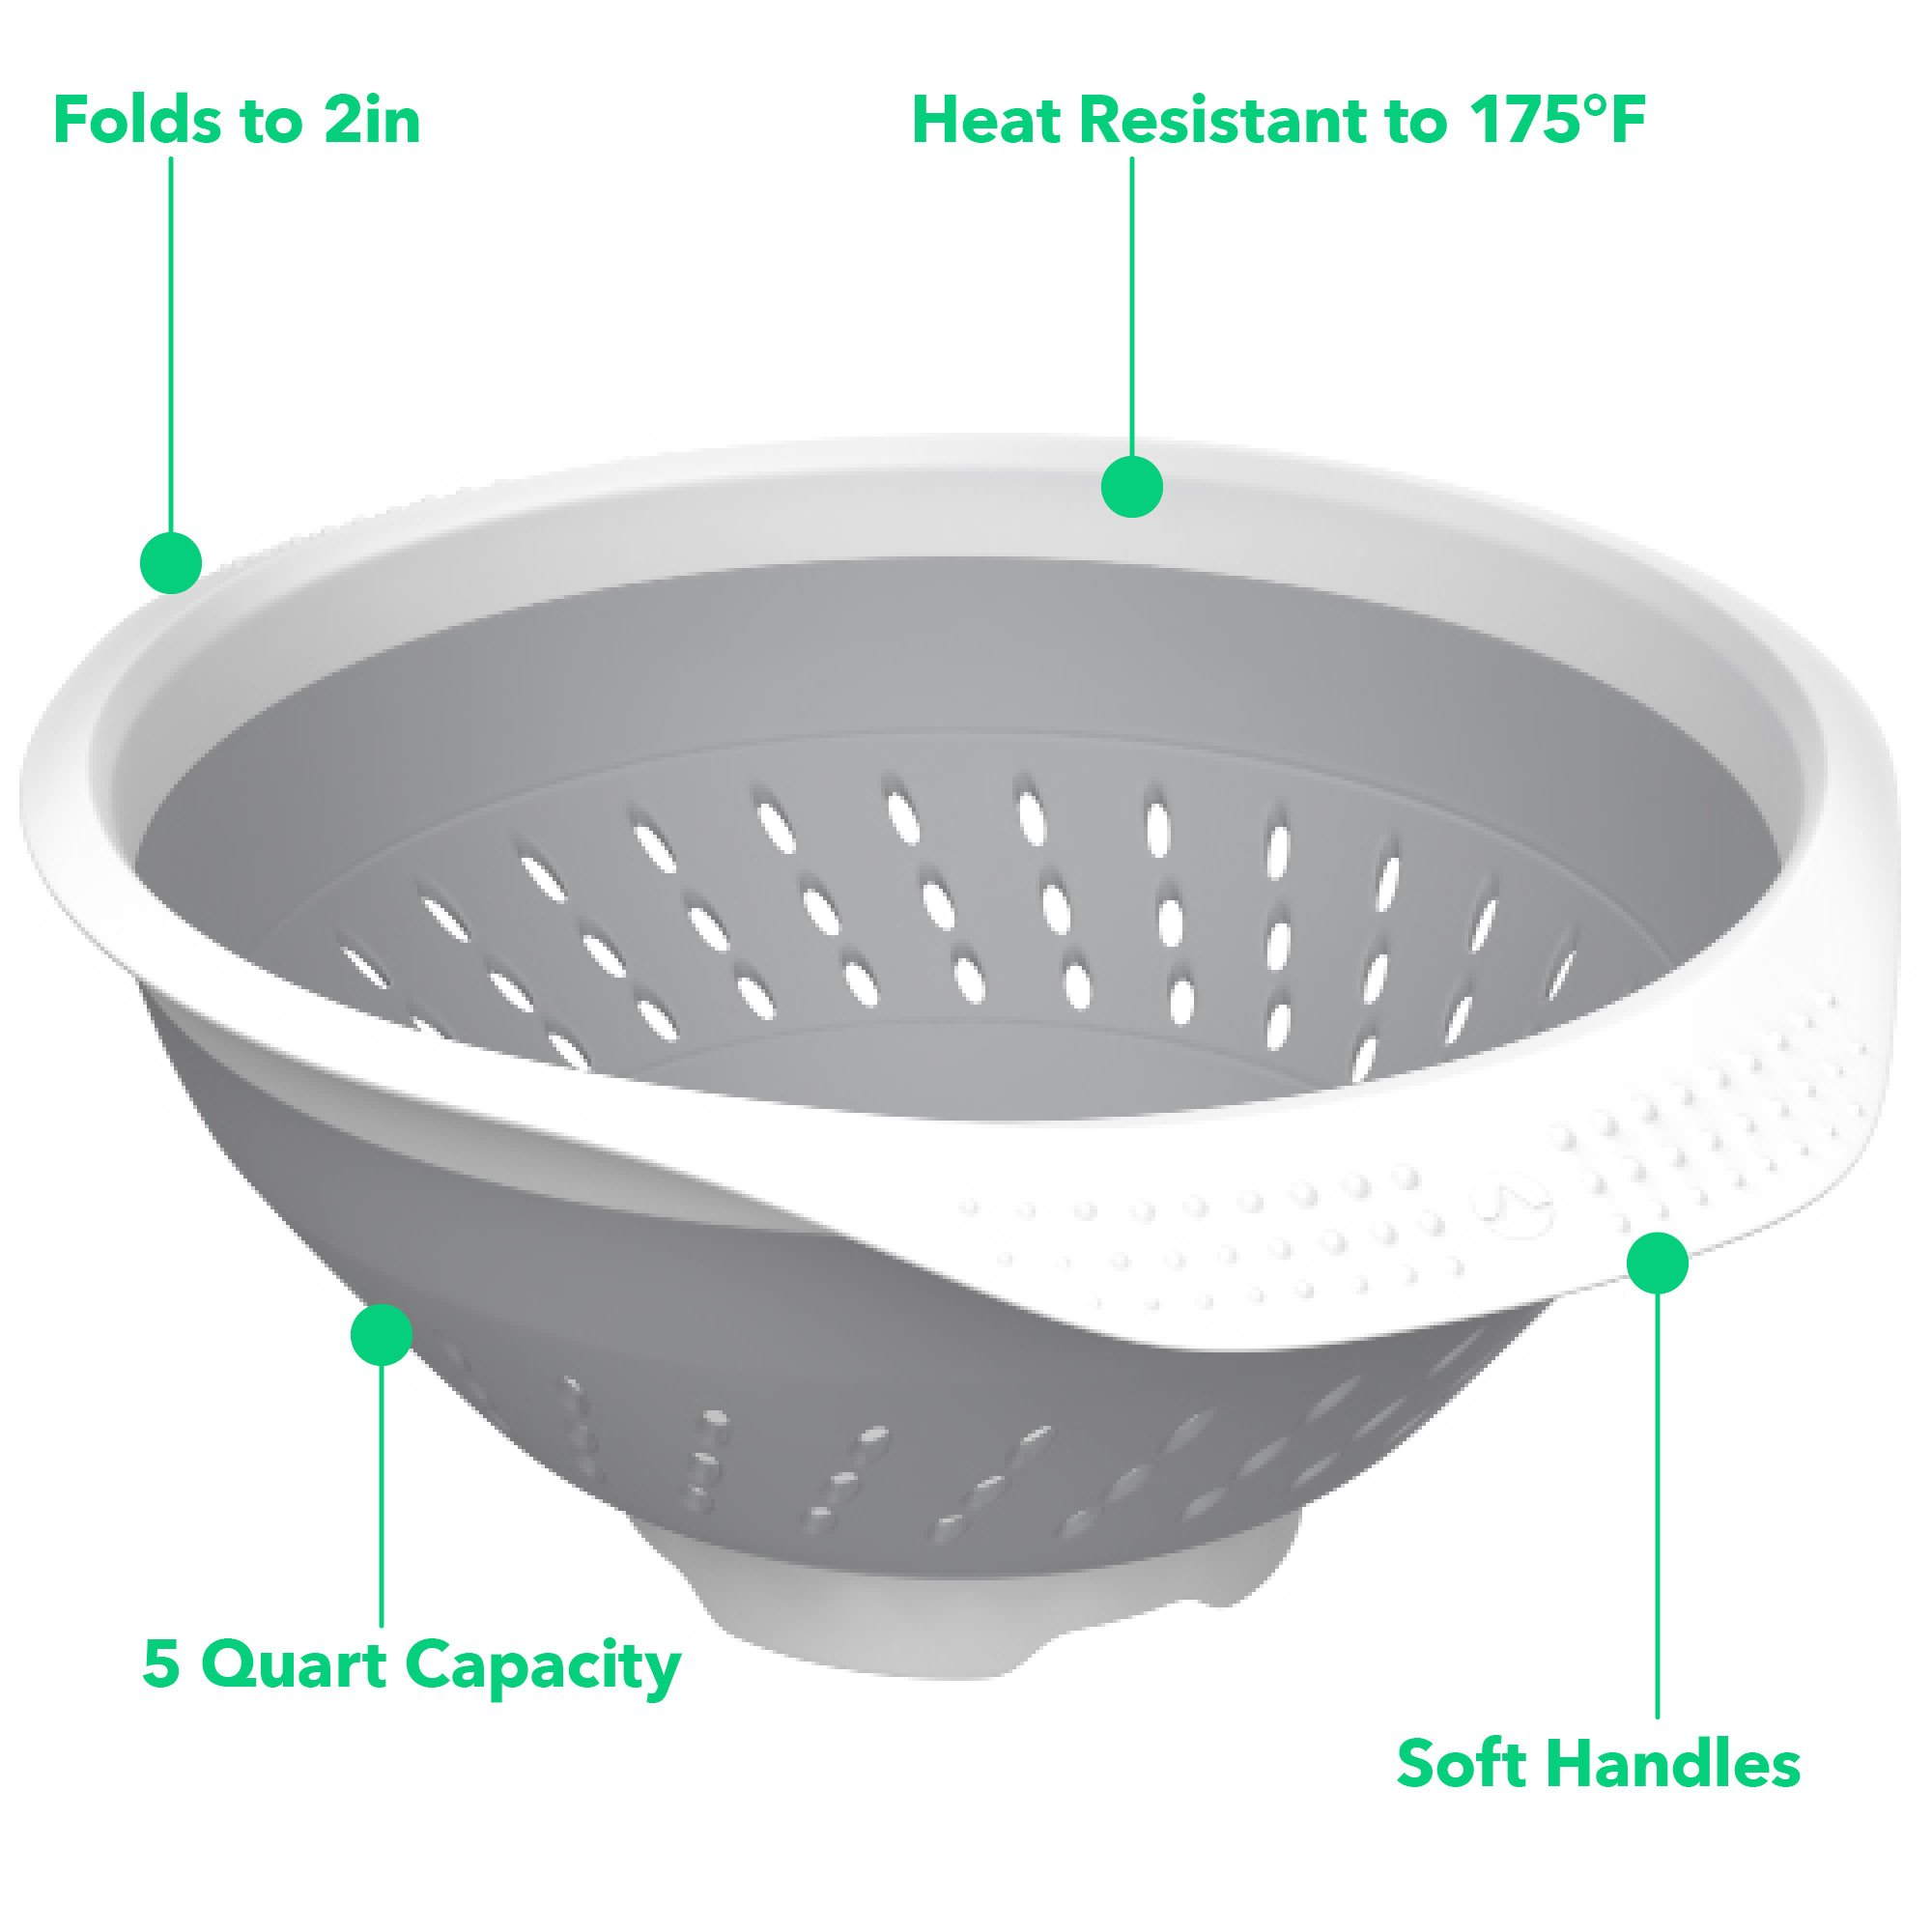 Vremi 5 Quart Collapsible Colander - BPA Free Silicone Food Strainer with Plastic Handles - Heavy Duty Foldable Heat Resistant Pasta and Veggies Kitchen Drainer Steam Basket - Dishwasher Safe - Gray by Vremi (Image #4)